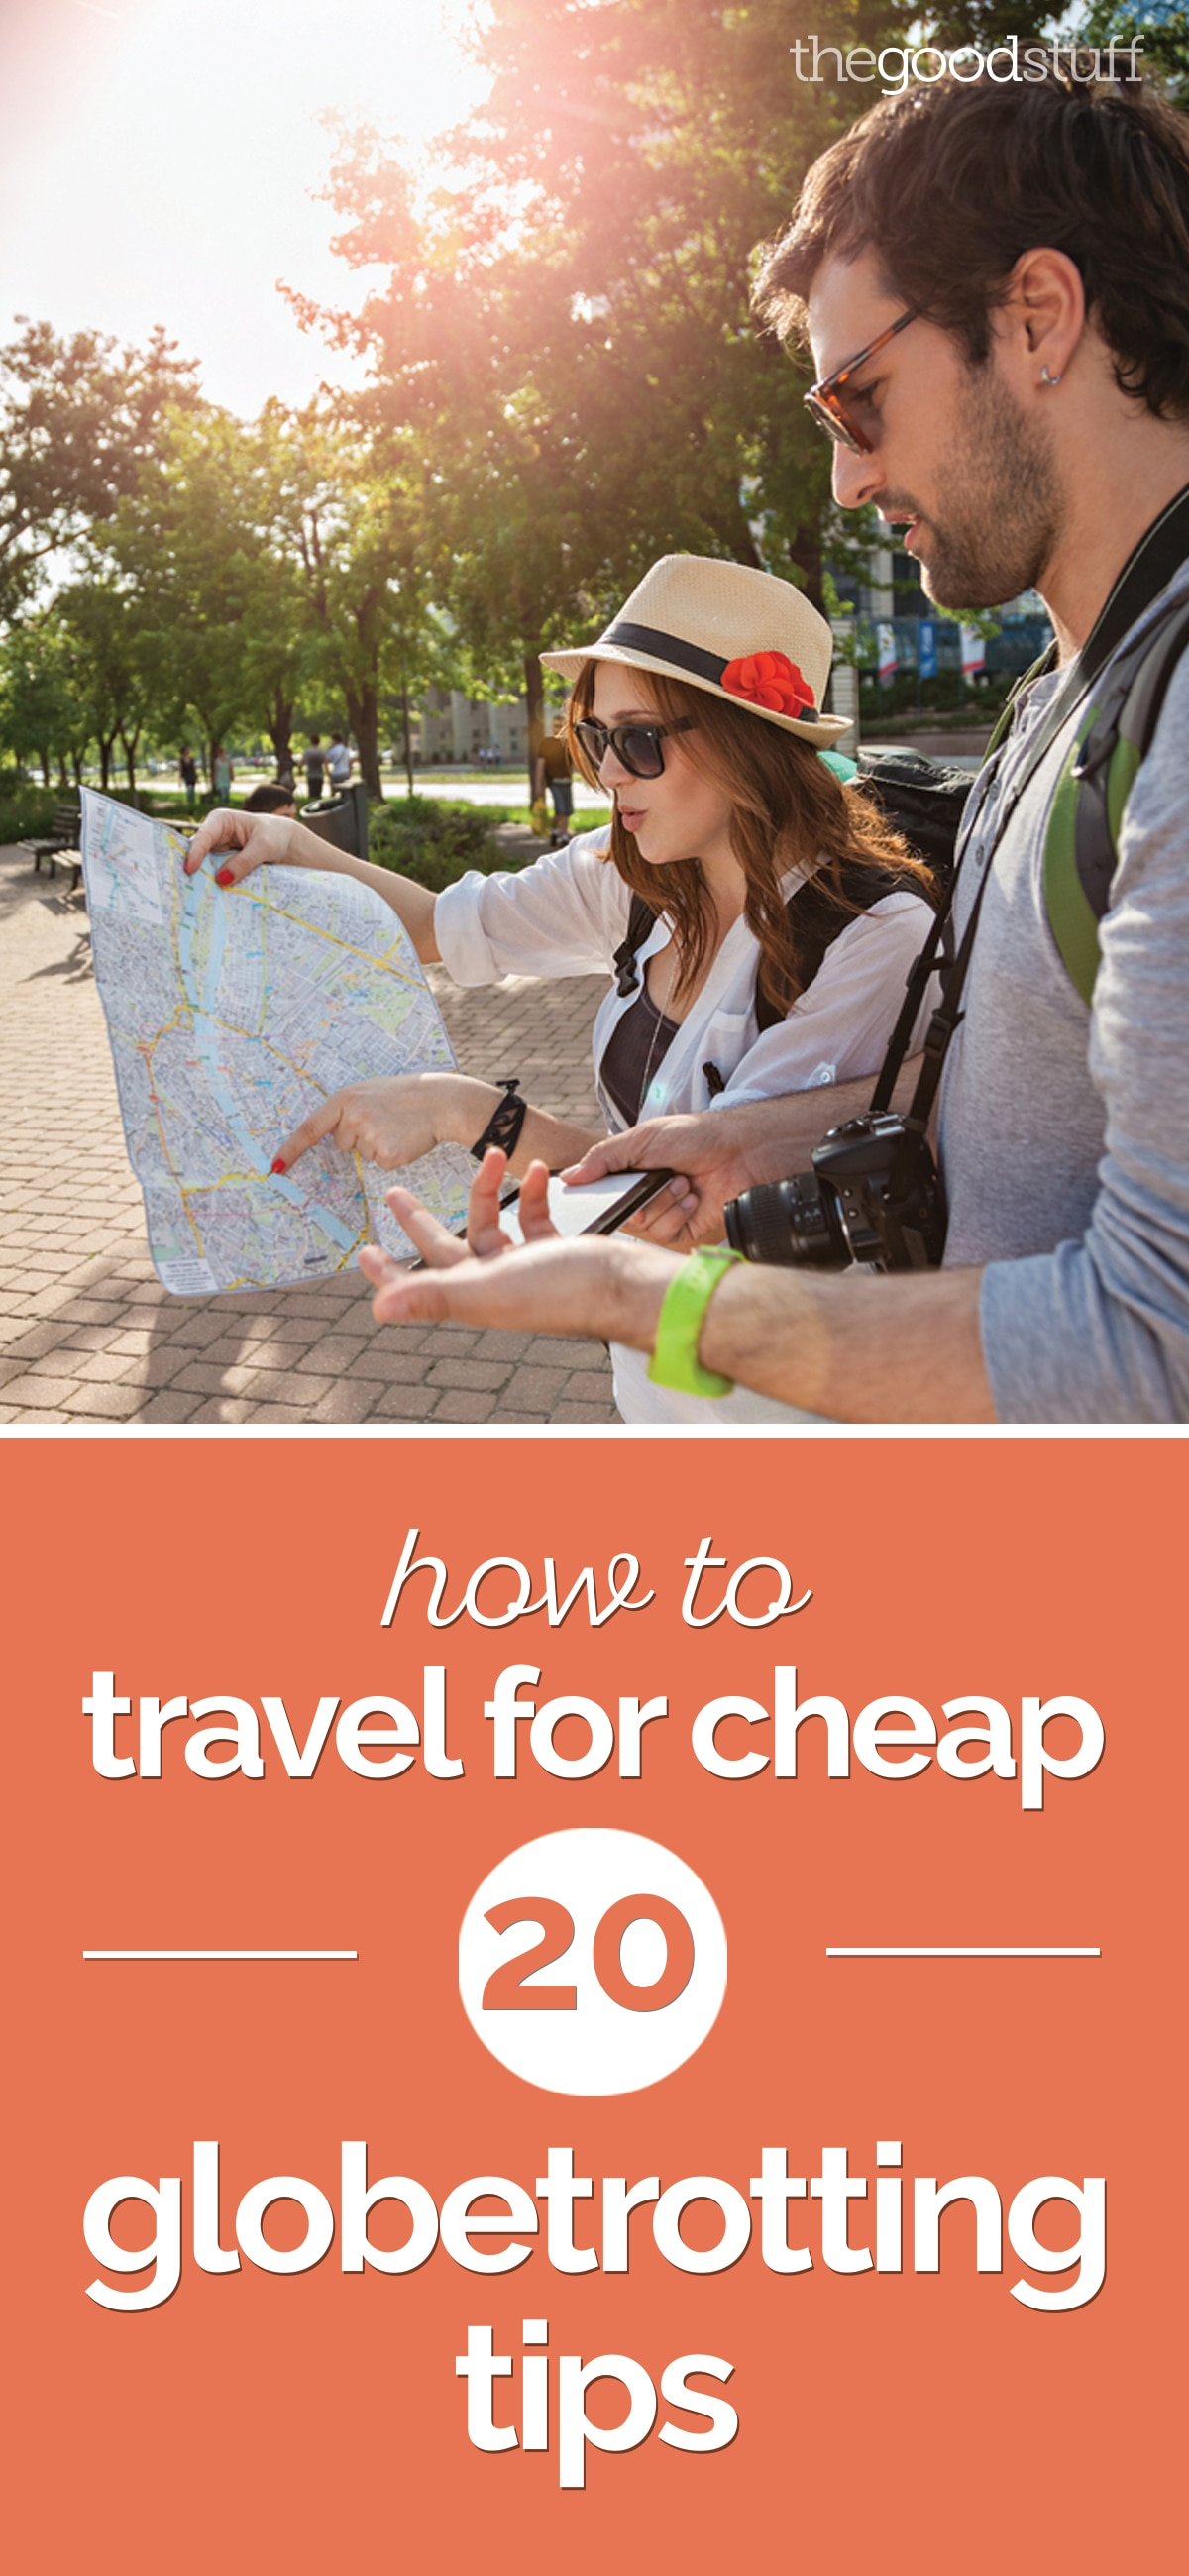 How to Travel for Cheap: 20 Globetrotting Tips | thegoodstuff